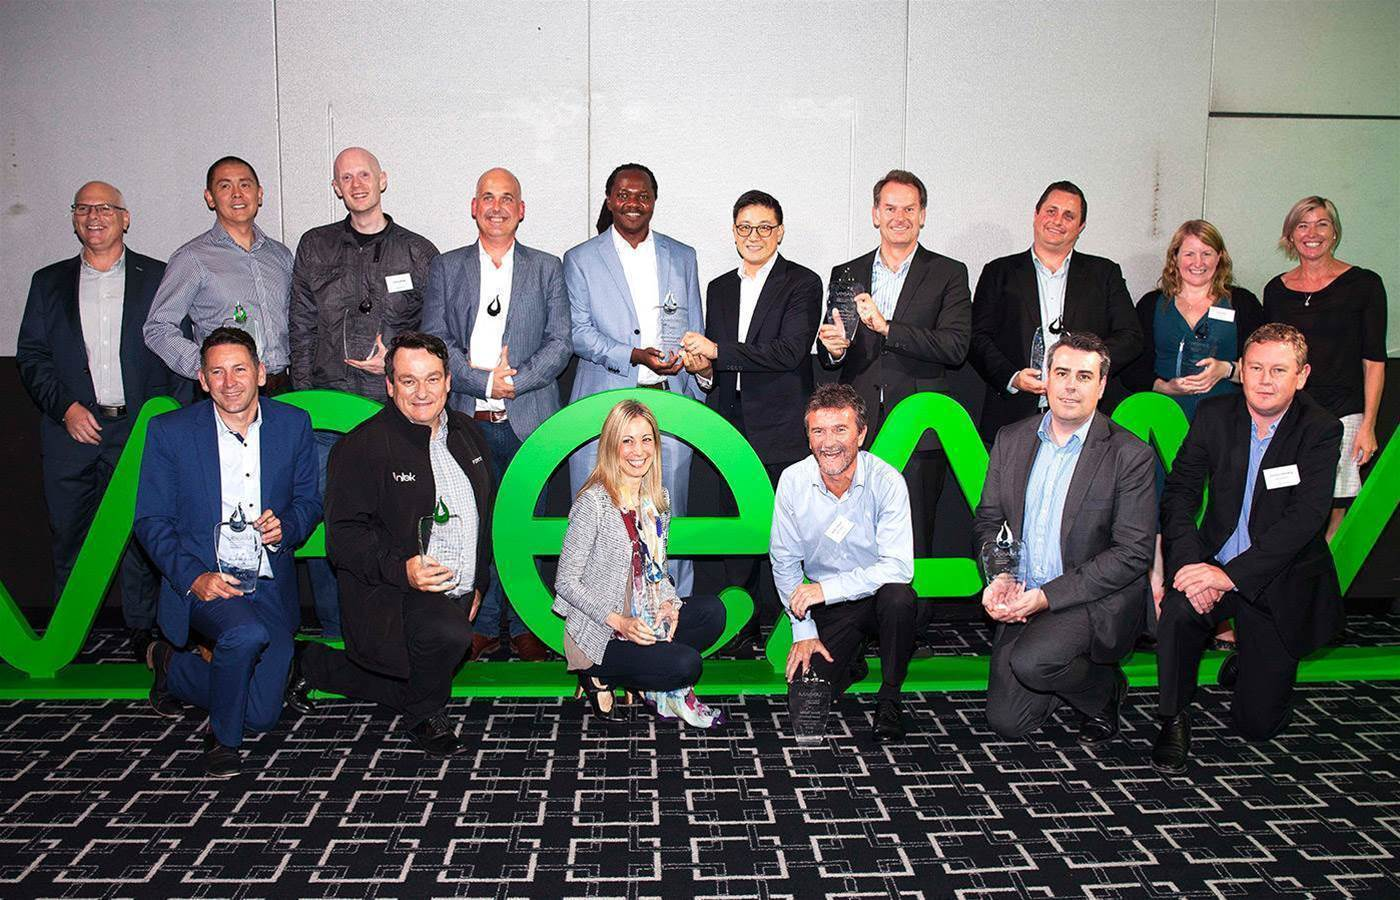 Veeam names Telstra, Ingram Micro, Vintek, Blue Apache among its top Australian partners at awards night in Sydney